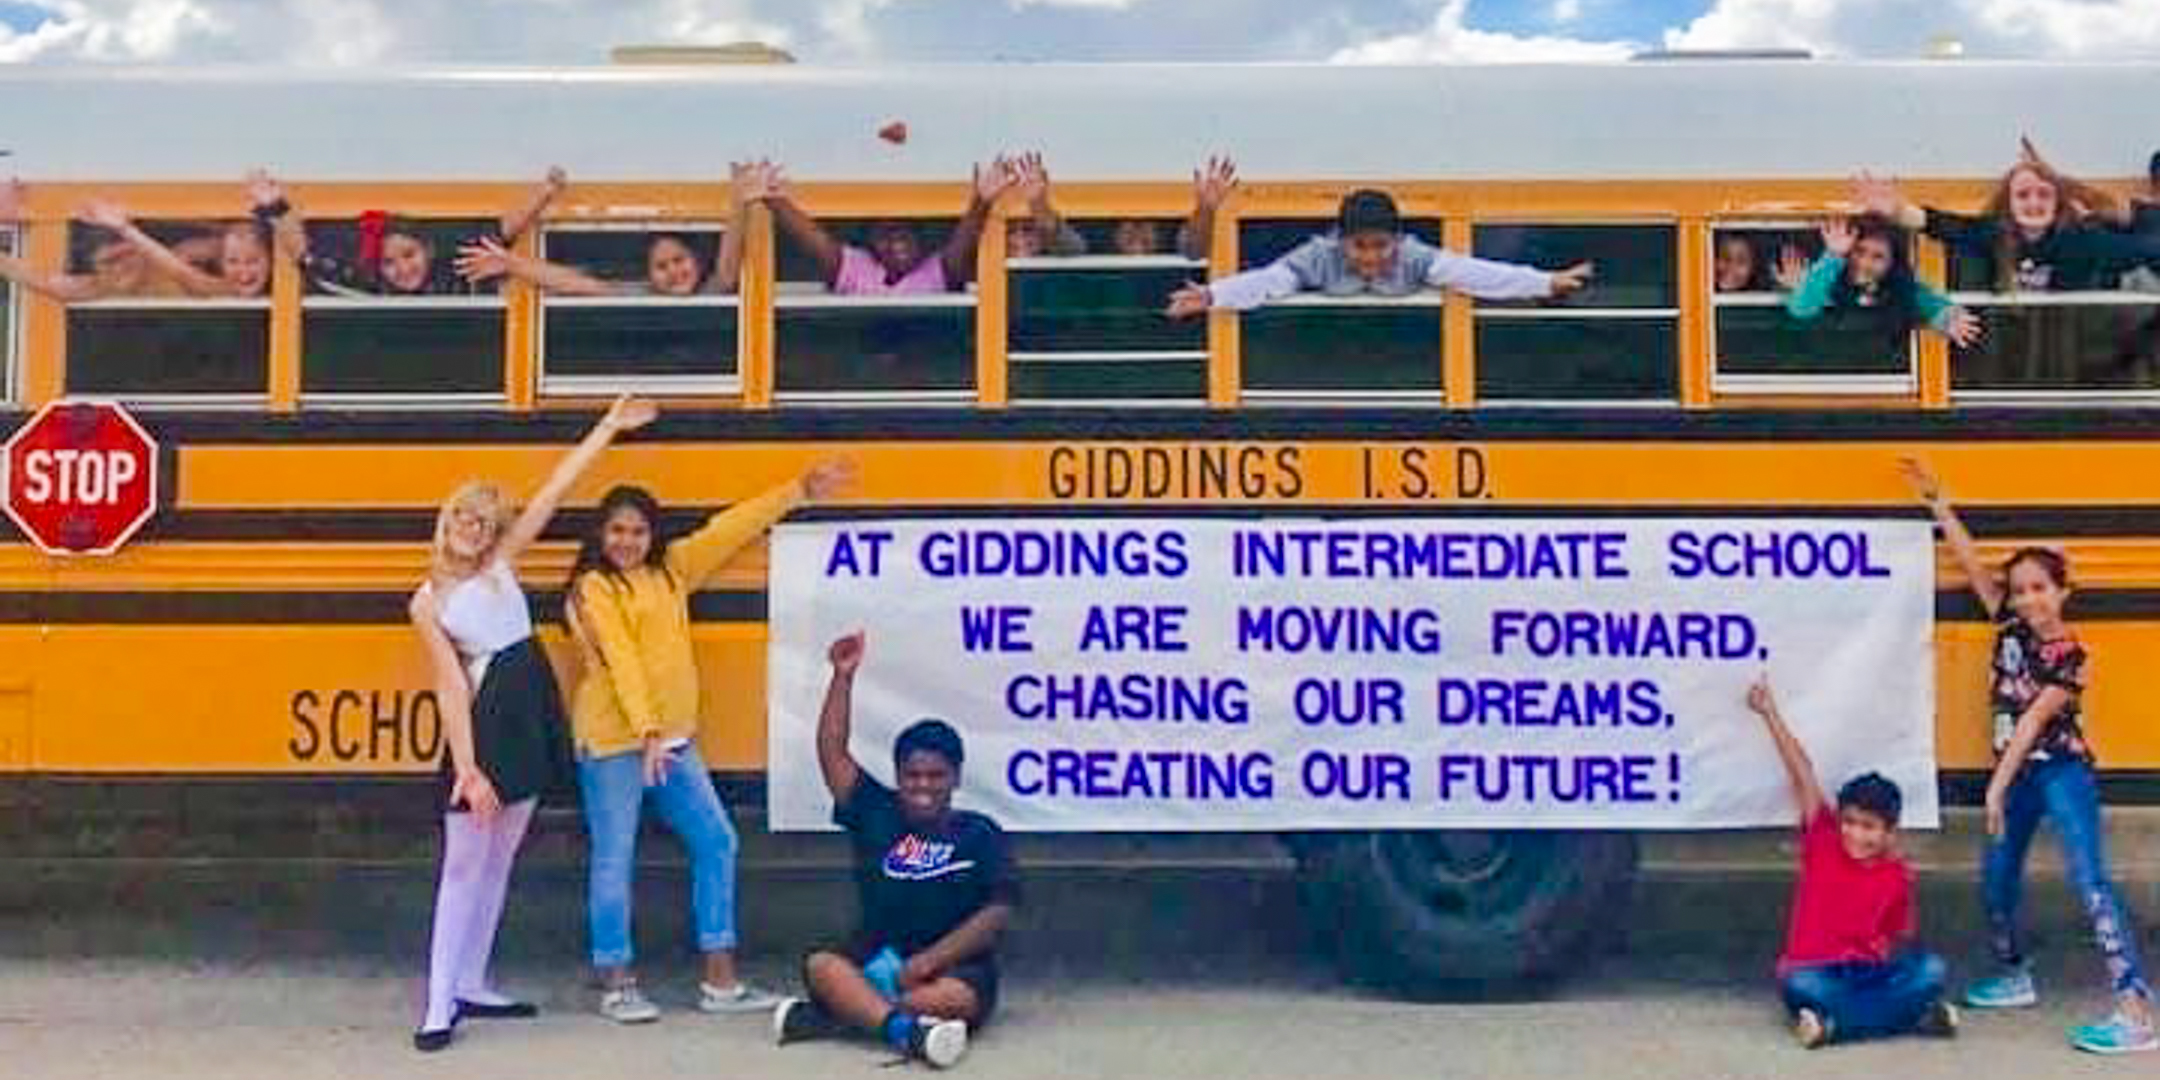 Giddings Intermediate School - Moving Forward; Chasing Our Dreams; Creating Our Future